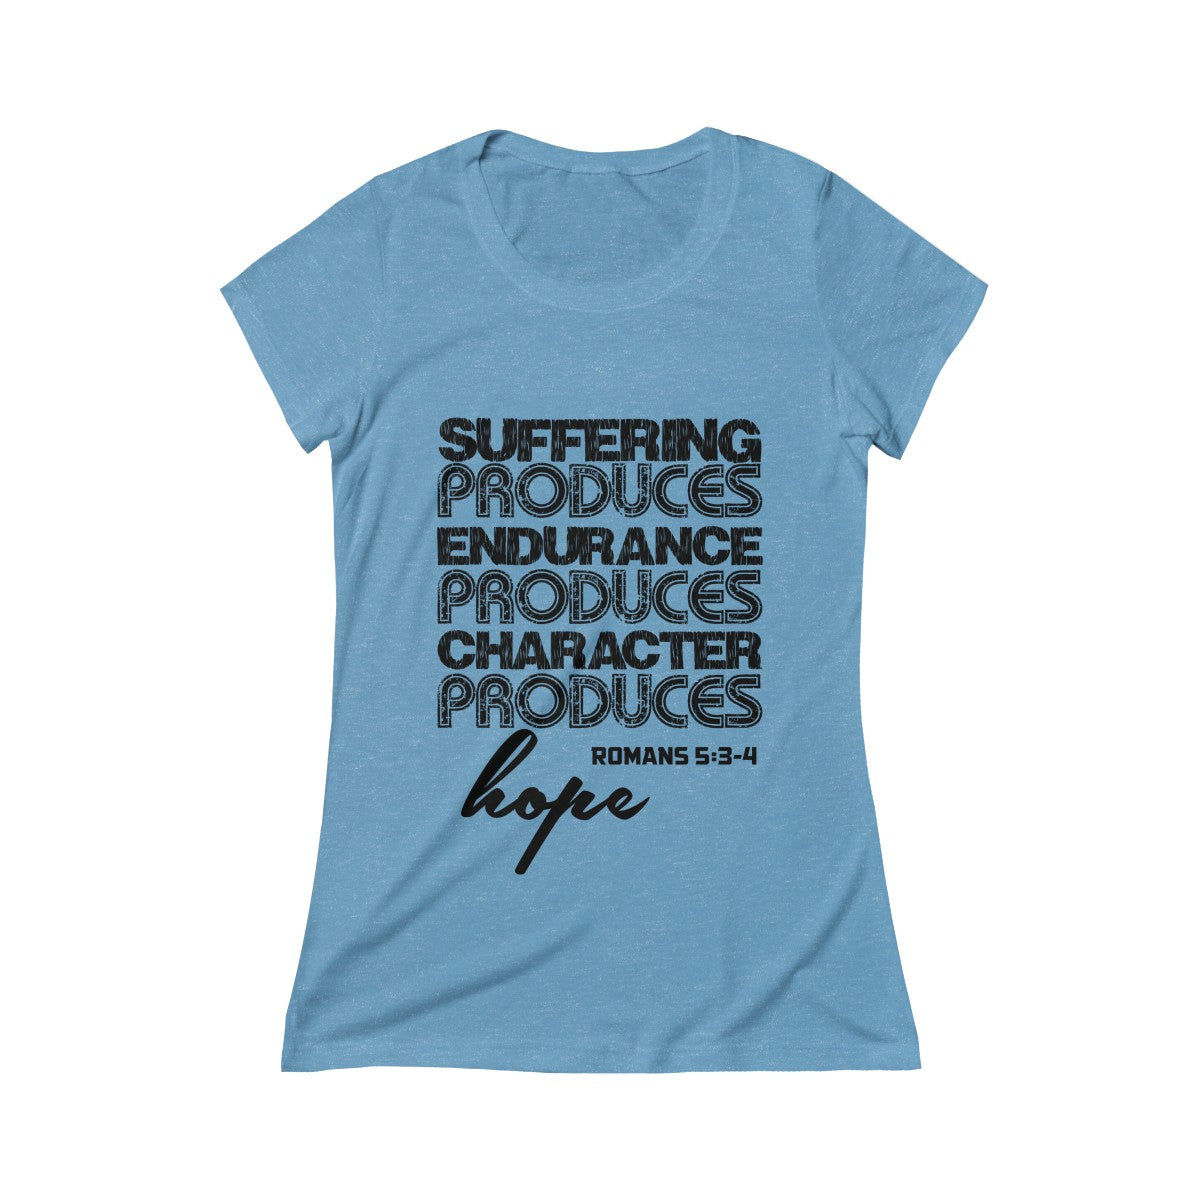 Suffering Produces Hope Romans 5:3-4 Bible Verse Womens Scoop Tee